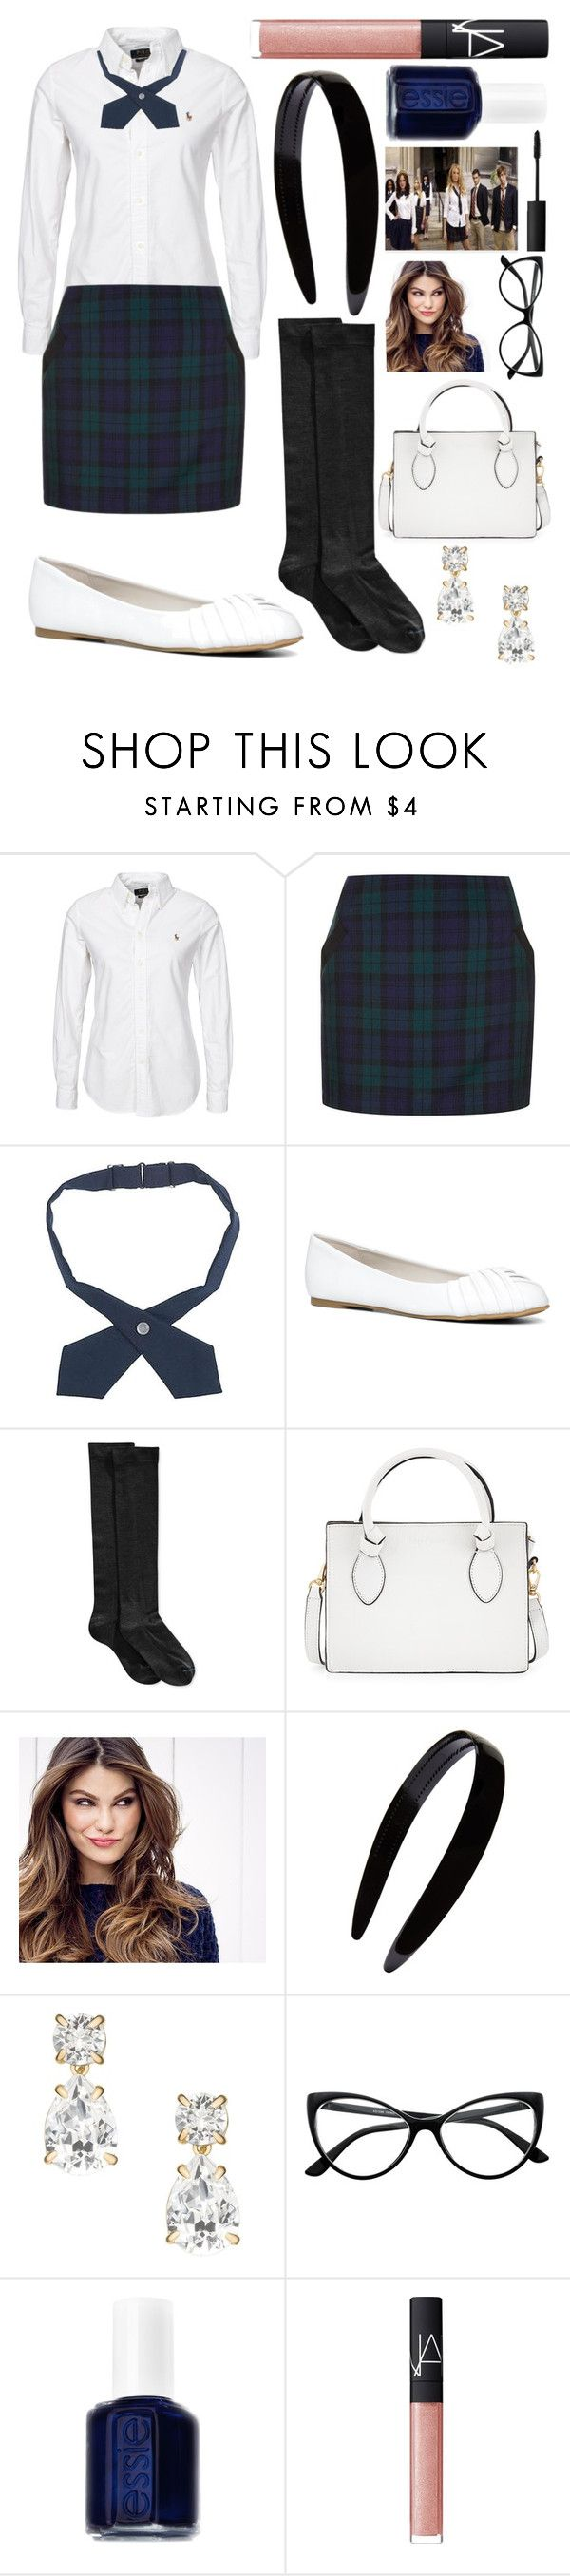 """""""Halloween costume contest// Constance school girl (gossip girl)"""" by emmacaseyyyy ❤ liked on Polyvore featuring Topshop, French Toast, ALDO, Hue, Foley + Corinna, ULTA, France Luxe, Kate Spade, Retrò and Essie"""